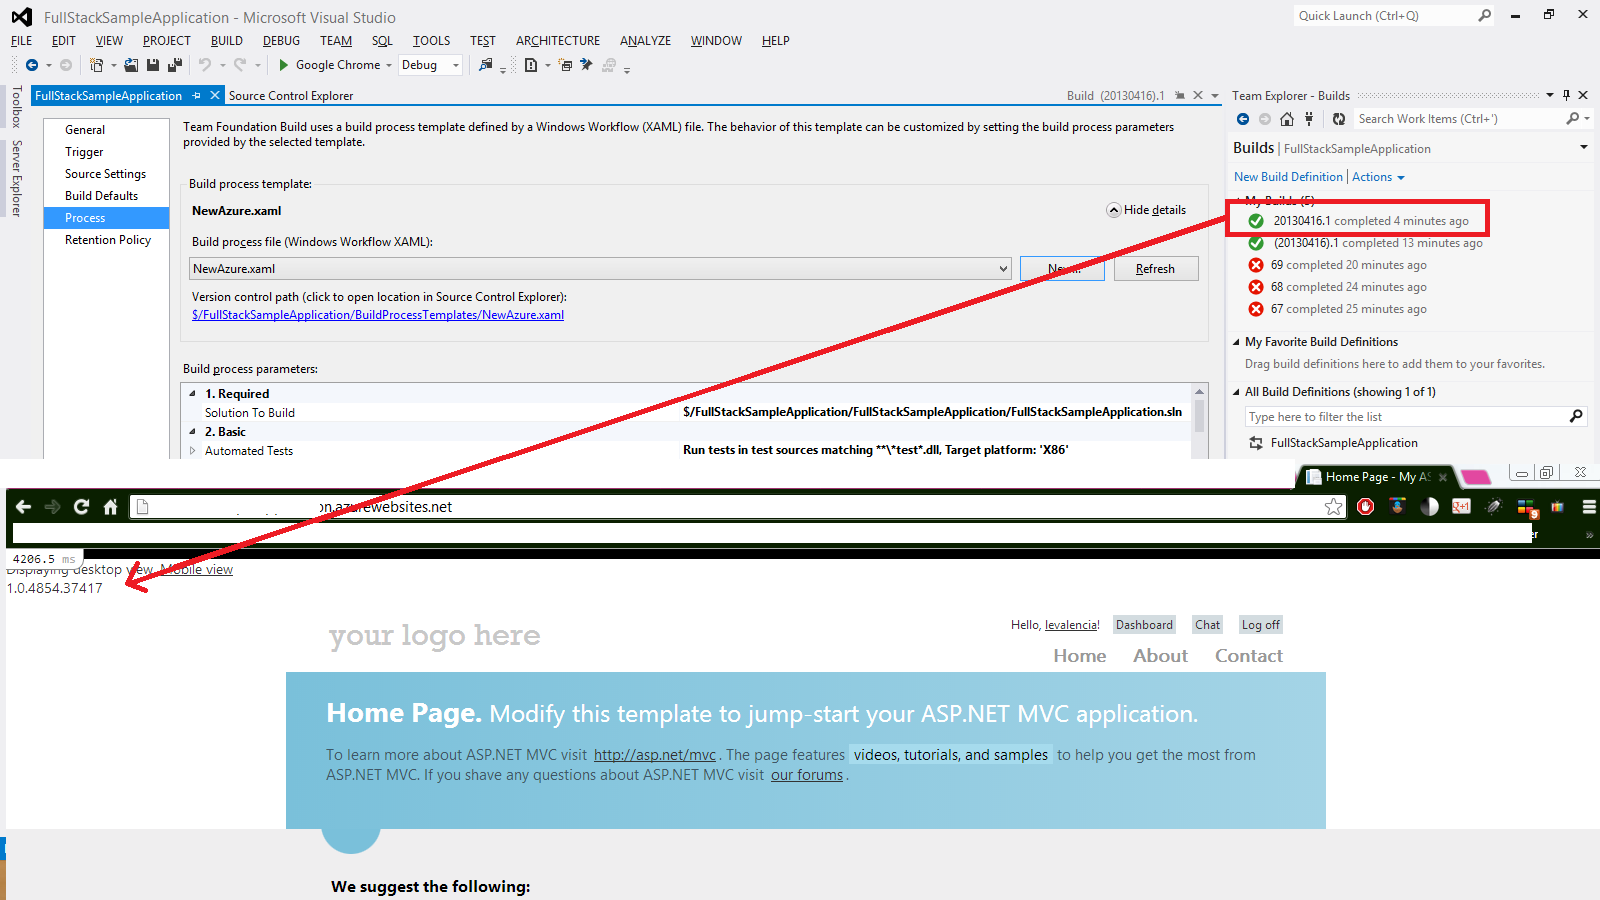 where the mvc application in asp.net are located